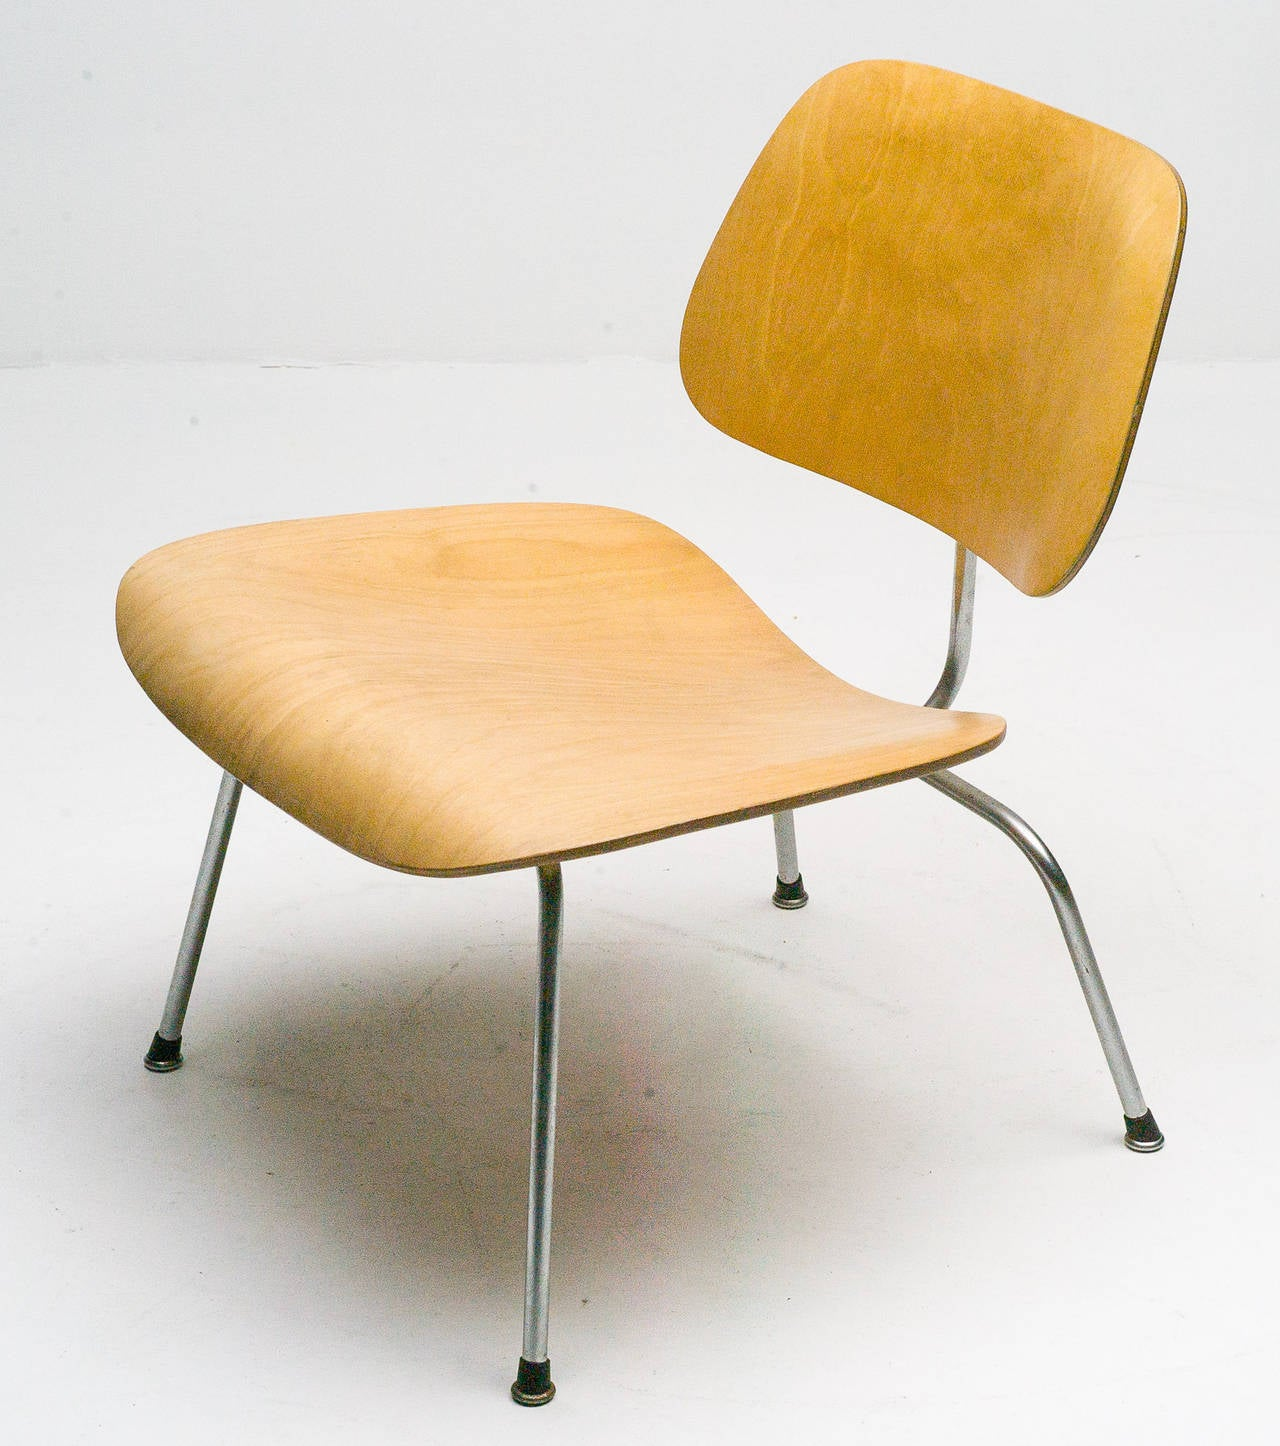 eames chair original for sale original edition herman. Black Bedroom Furniture Sets. Home Design Ideas